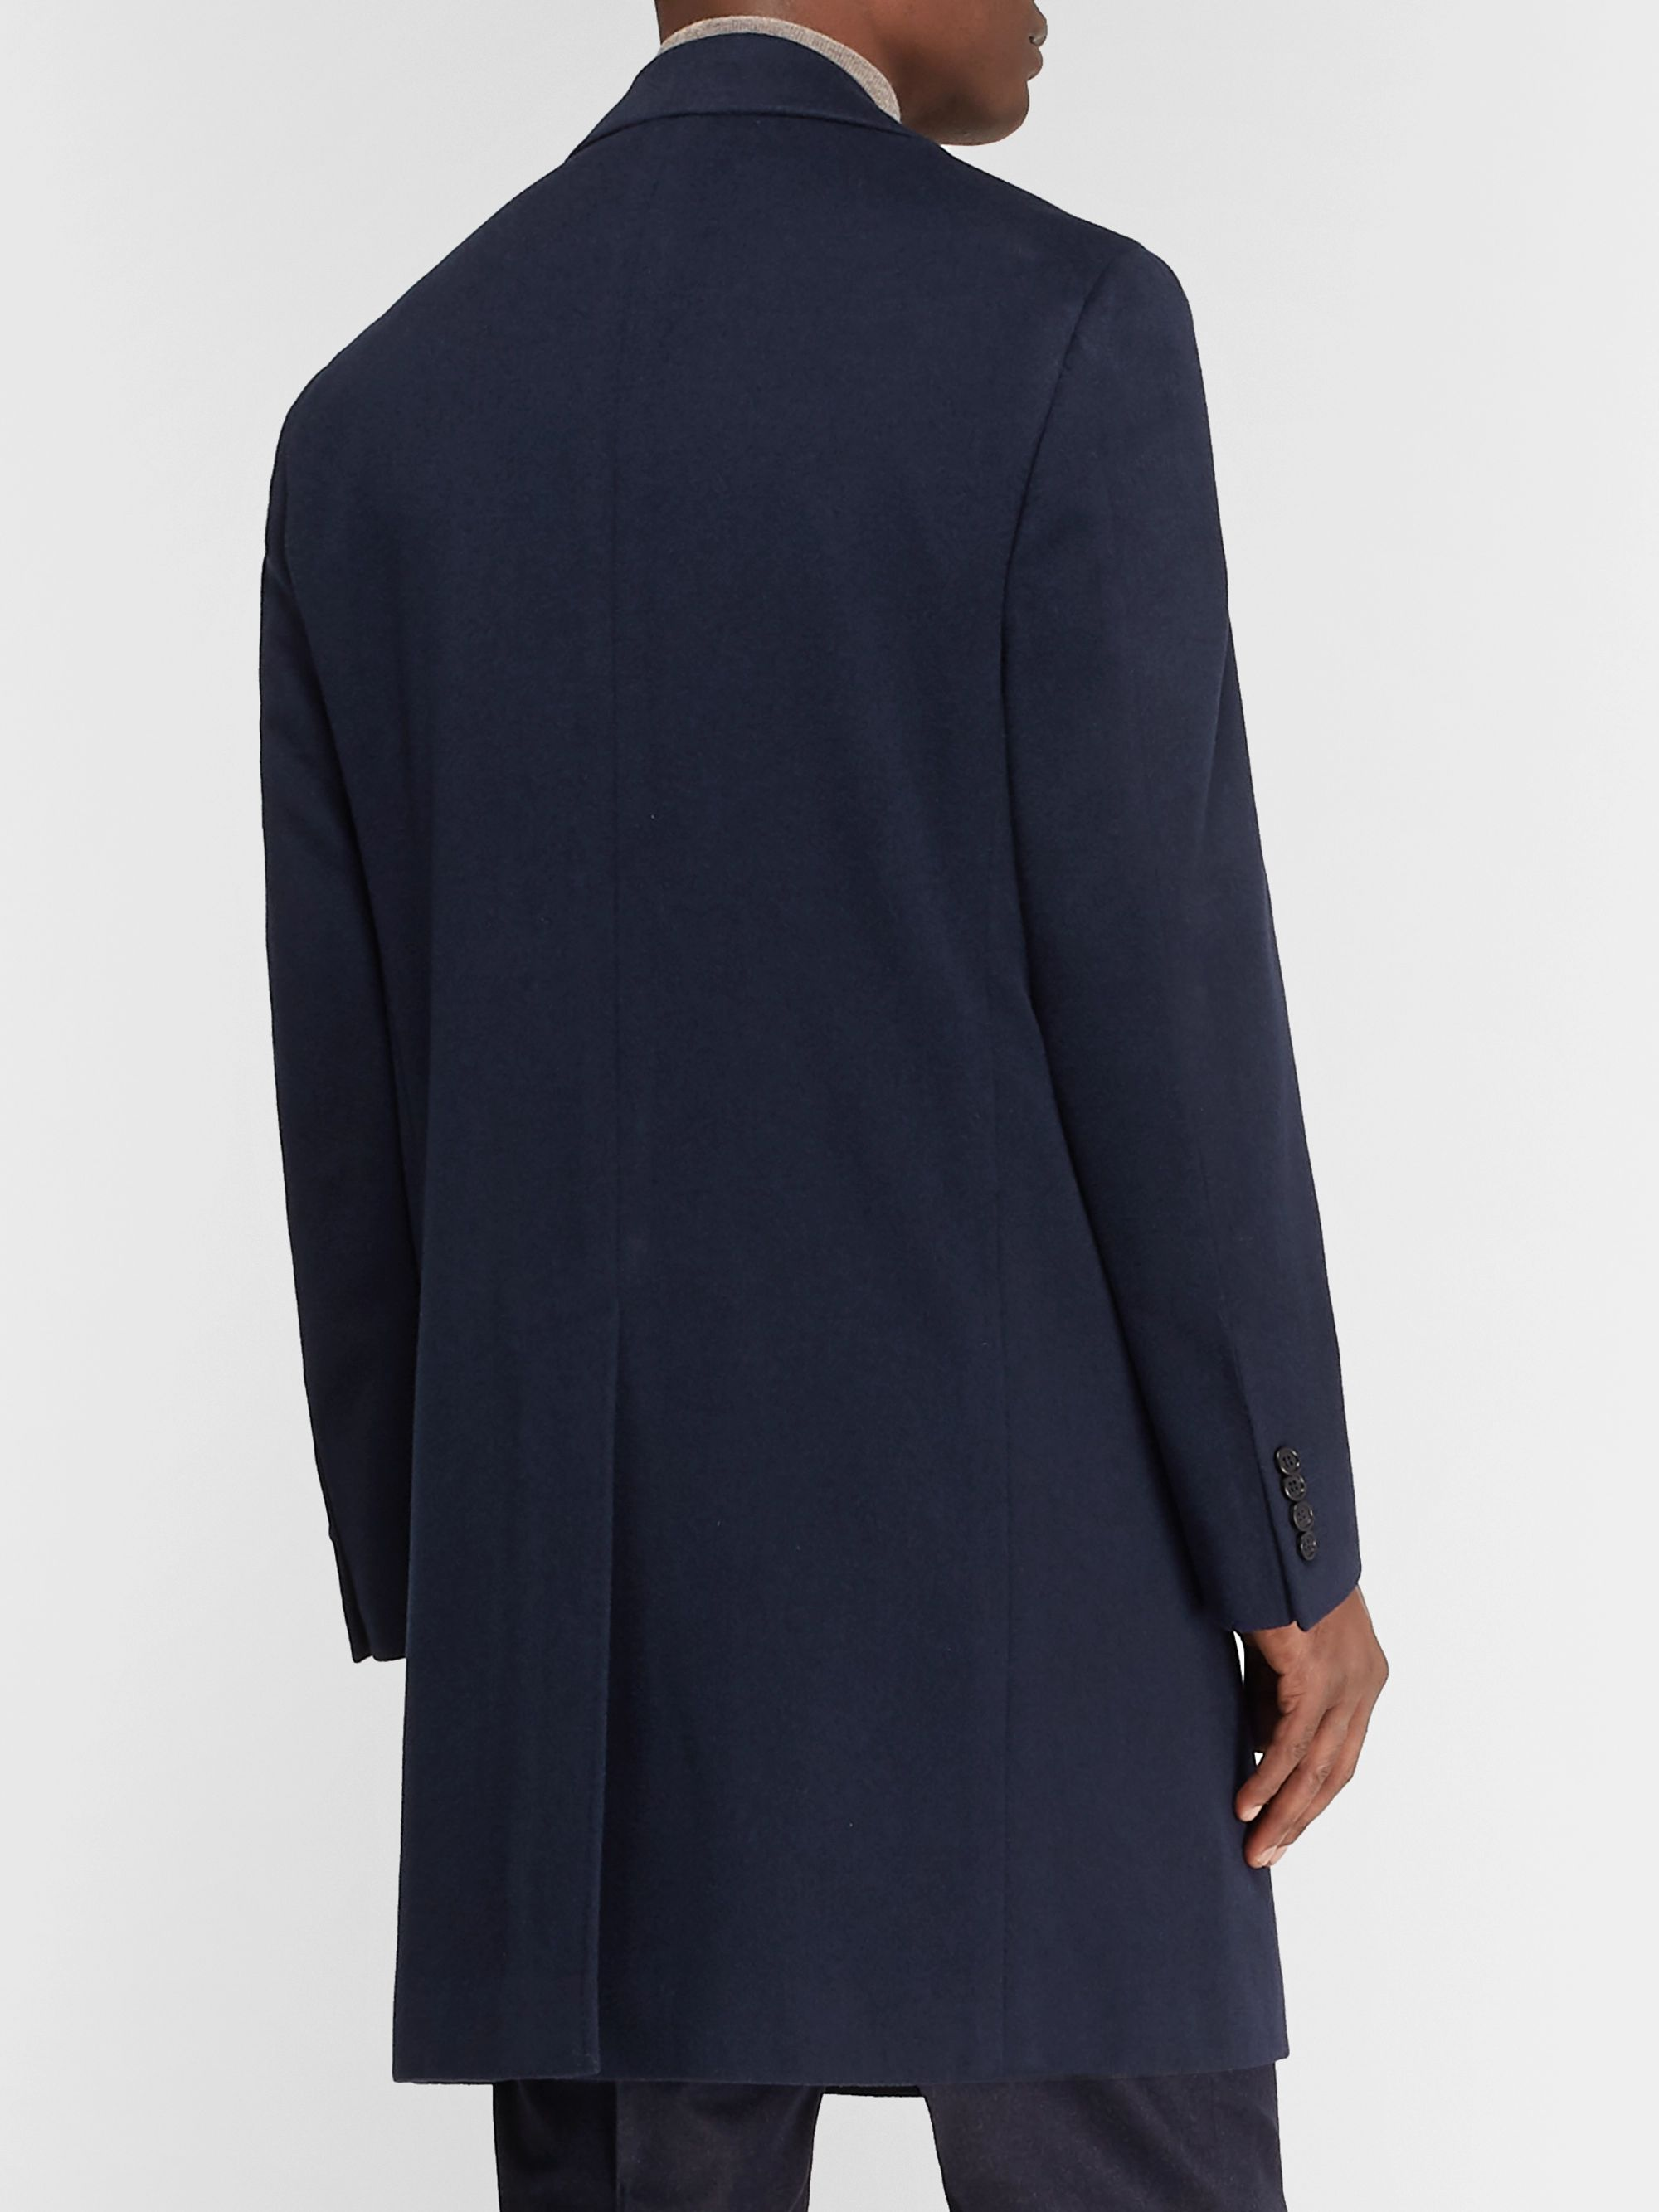 Canali Wool and Cashmere-Blend Overcoat